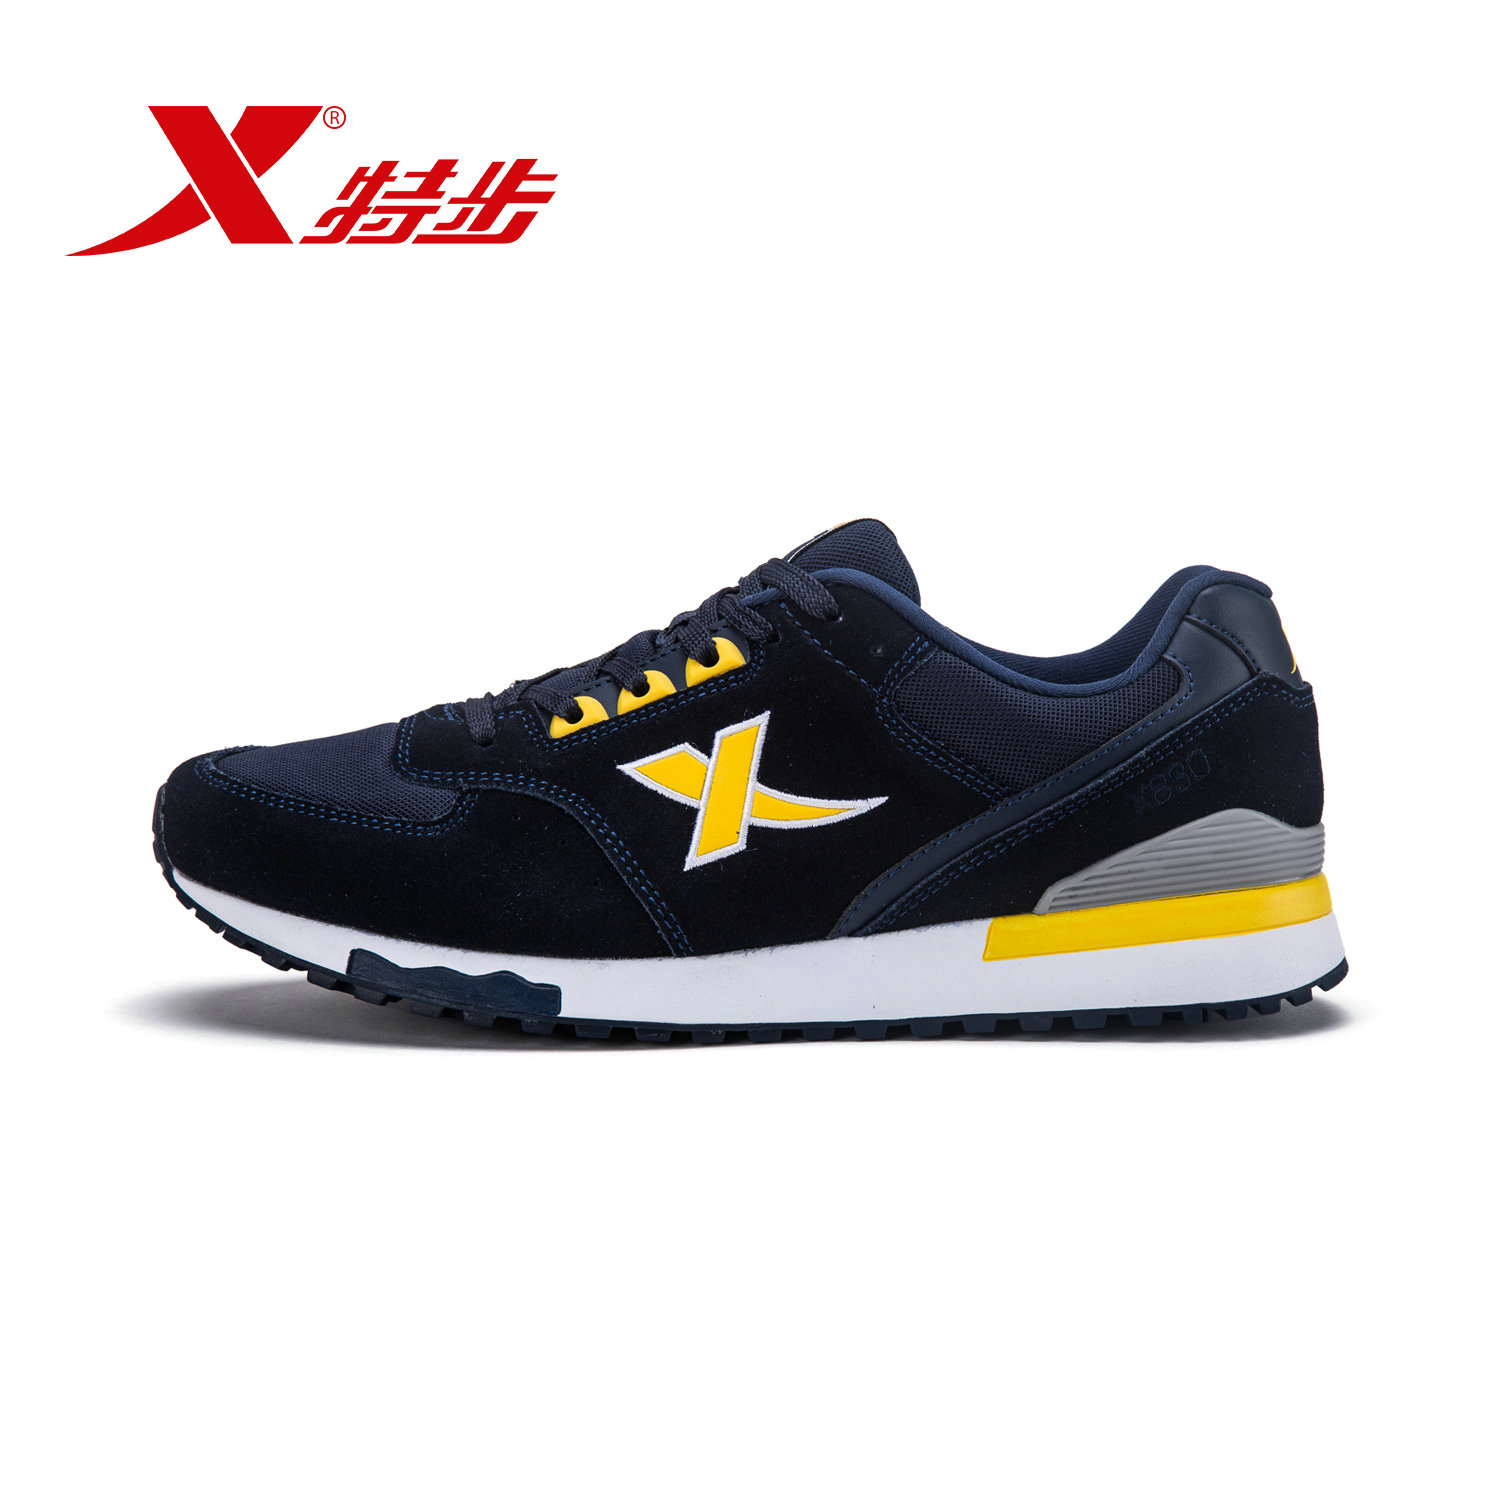 Xtep running shoes men fall sports shoes authentic retro fashion trend lightweight breathable men's casual running shoes